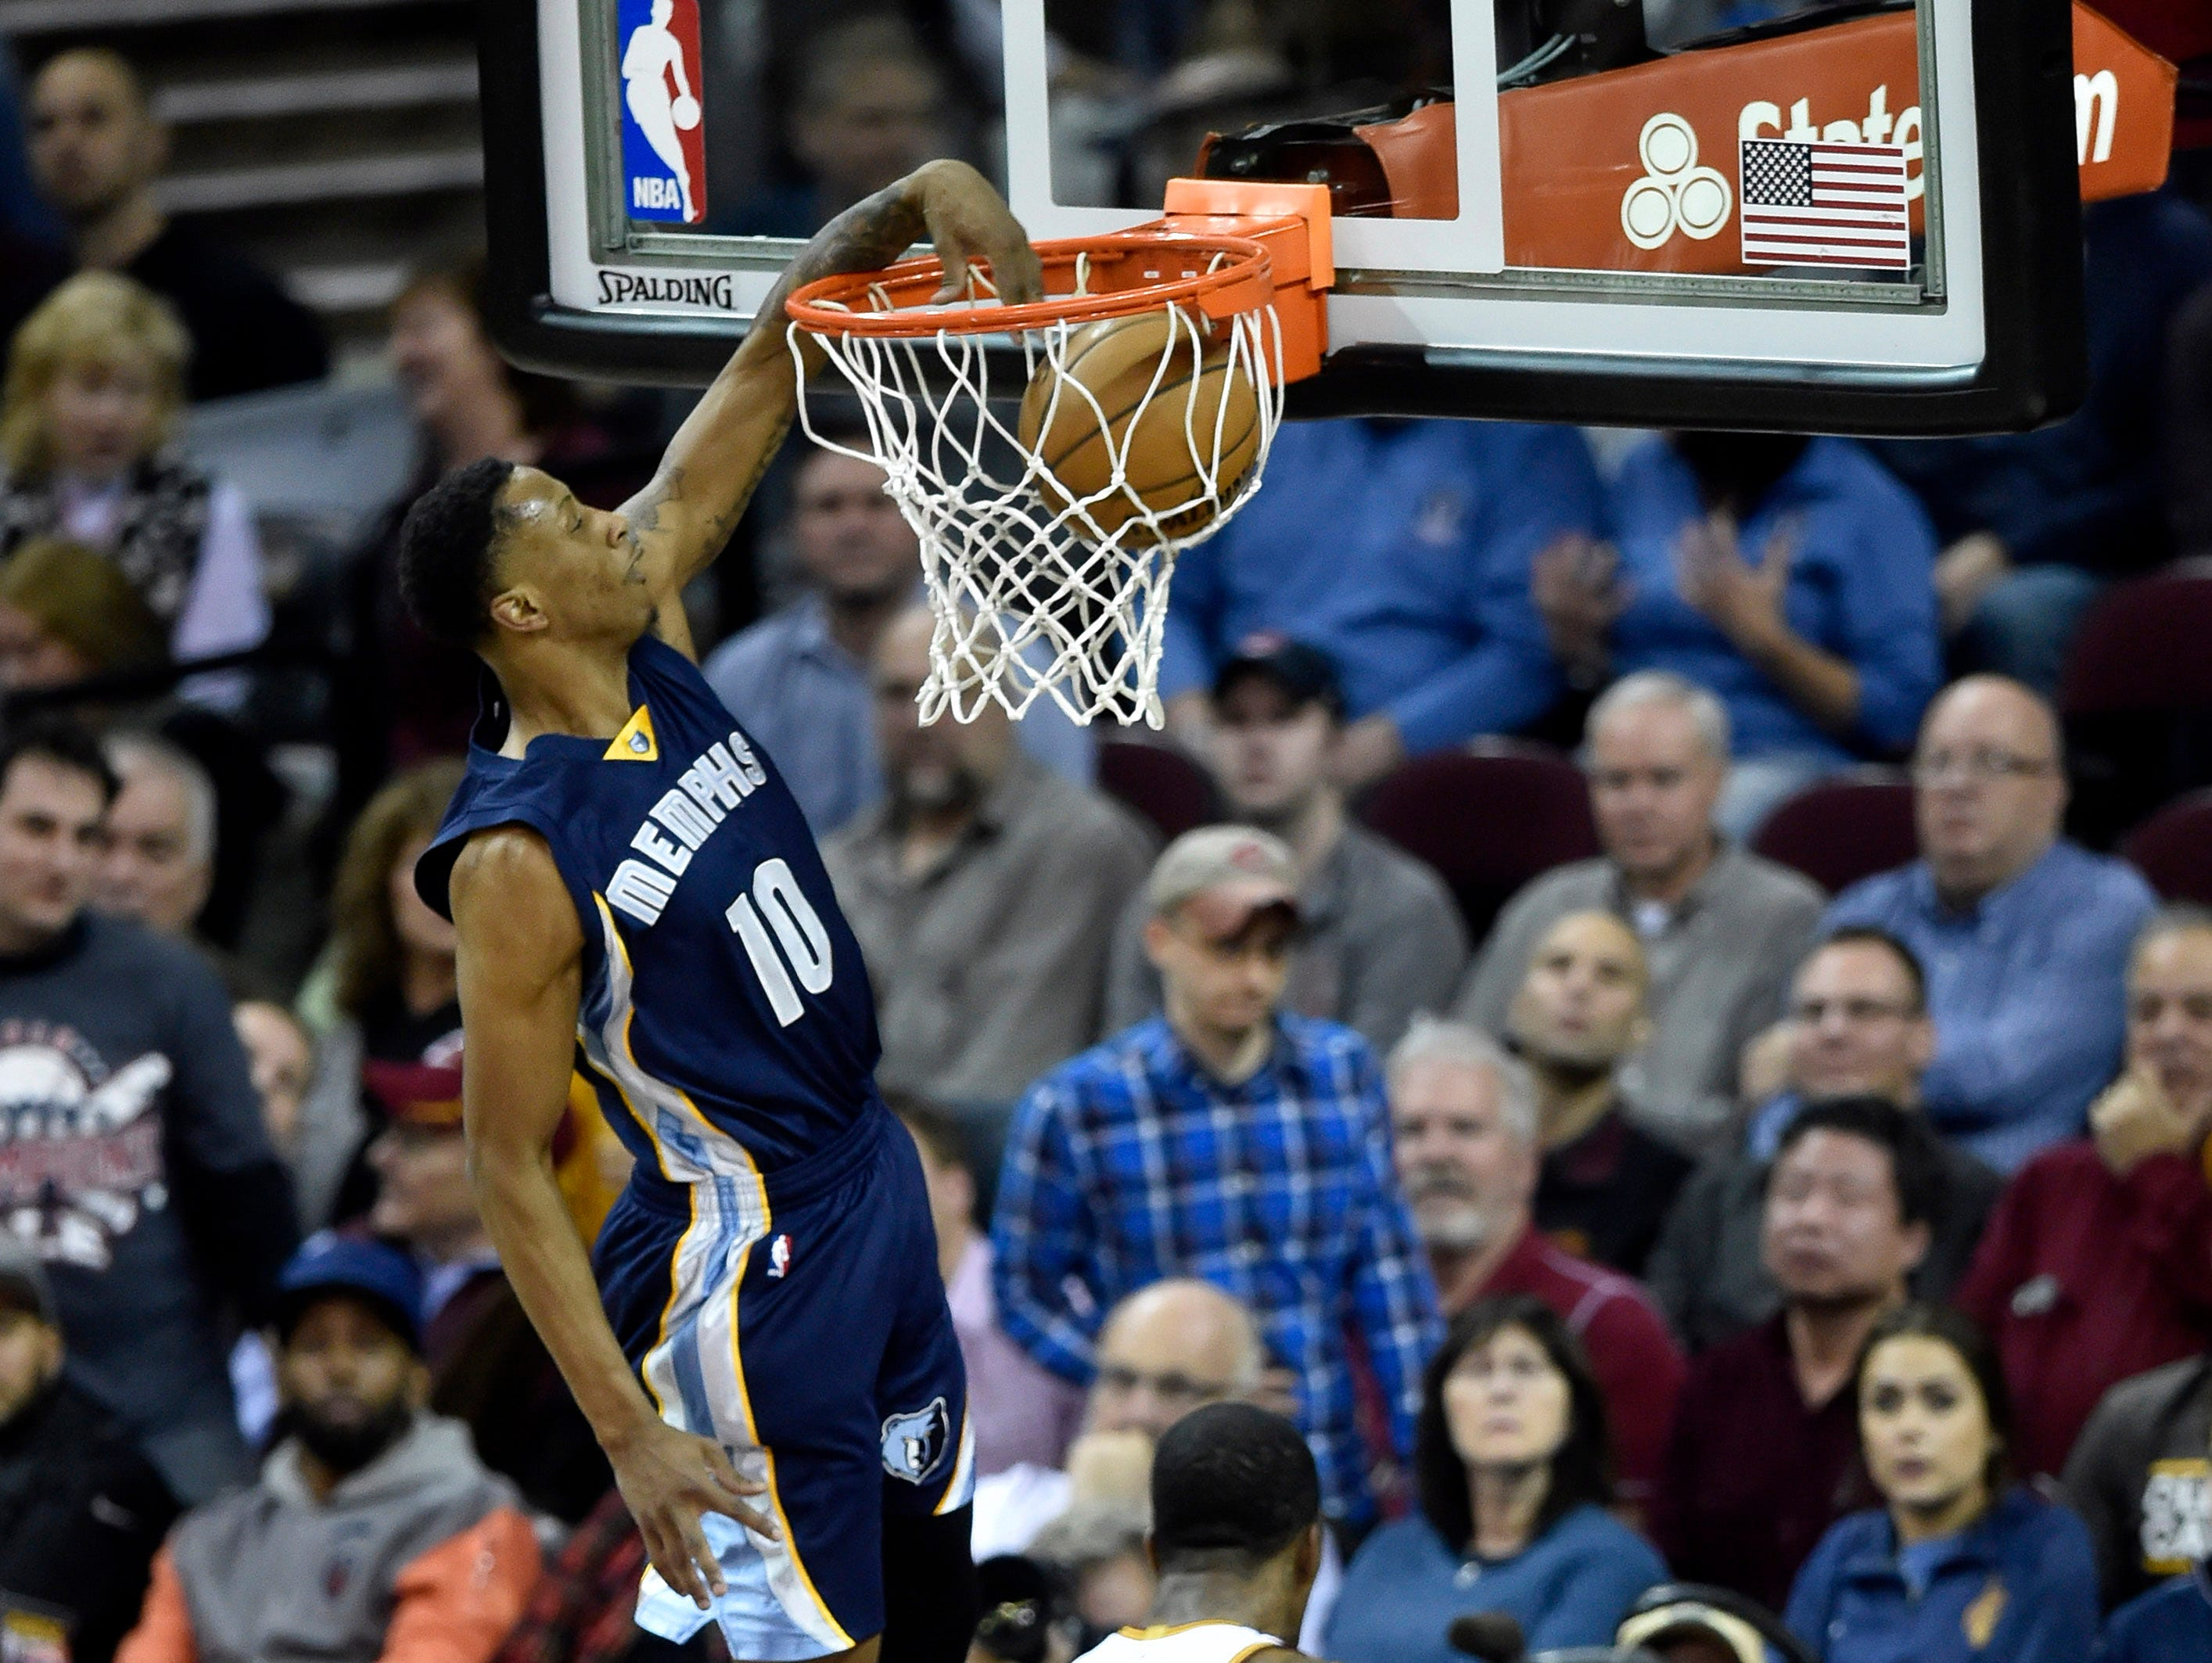 Dec 13, 2016; Cleveland, OH, USA; Memphis Grizzlies forward Troy Williams (10) dunks against the Cleveland Cavaliers in the third quarter at Quicken Loans Arena.